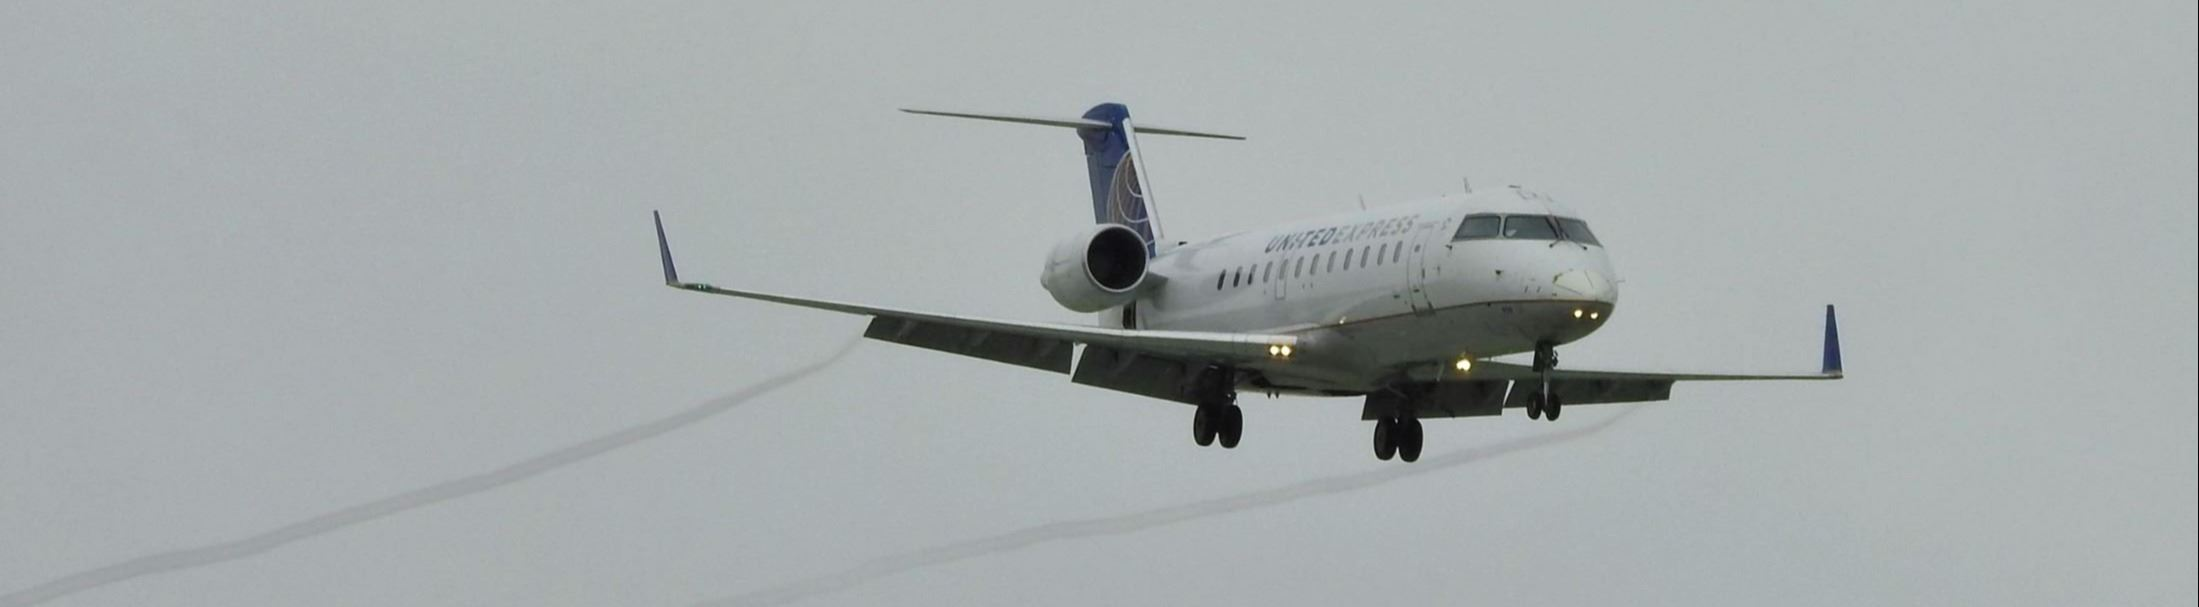 United CRJ200 Aircraft In Flight